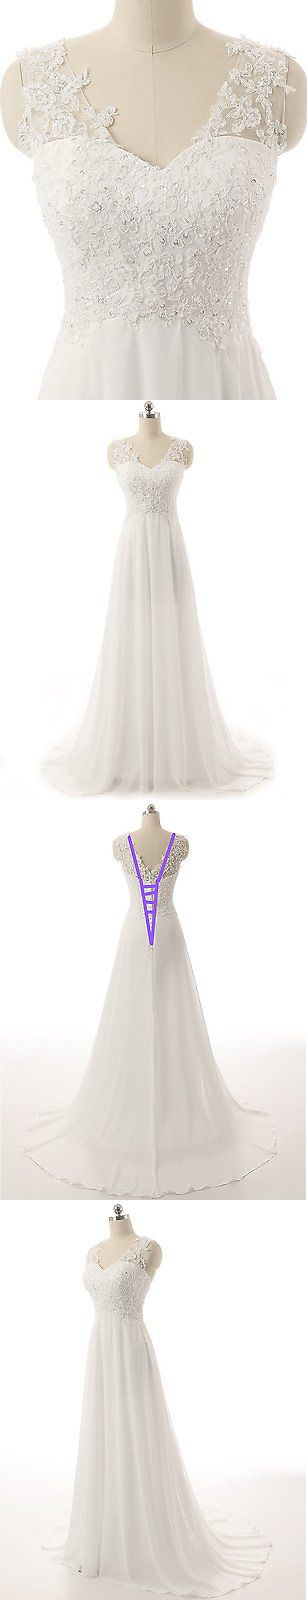 Wedding Dresses: Simple White Ivory Chiffon Lace Wedding Dress Bridal Gown Size 6 8 10 12 14 16+ -> BUY IT NOW ONLY: $41.3 on eBay!